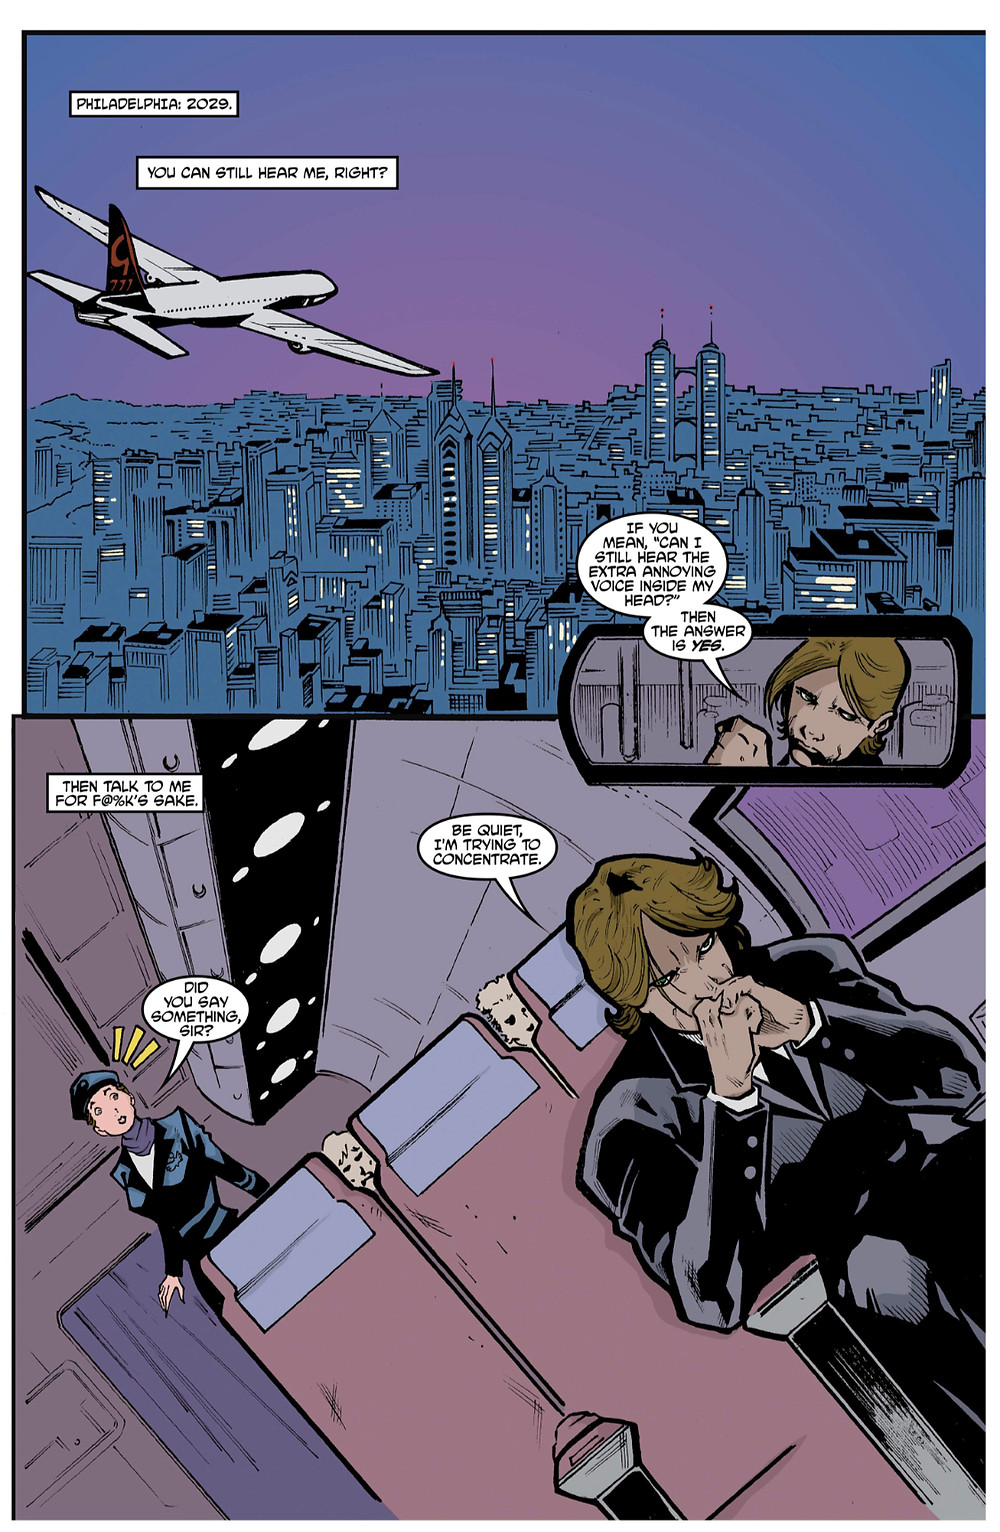 Transfer, issue #1, page 3, self-published, Garvey/Messiah, cover by Dizevez